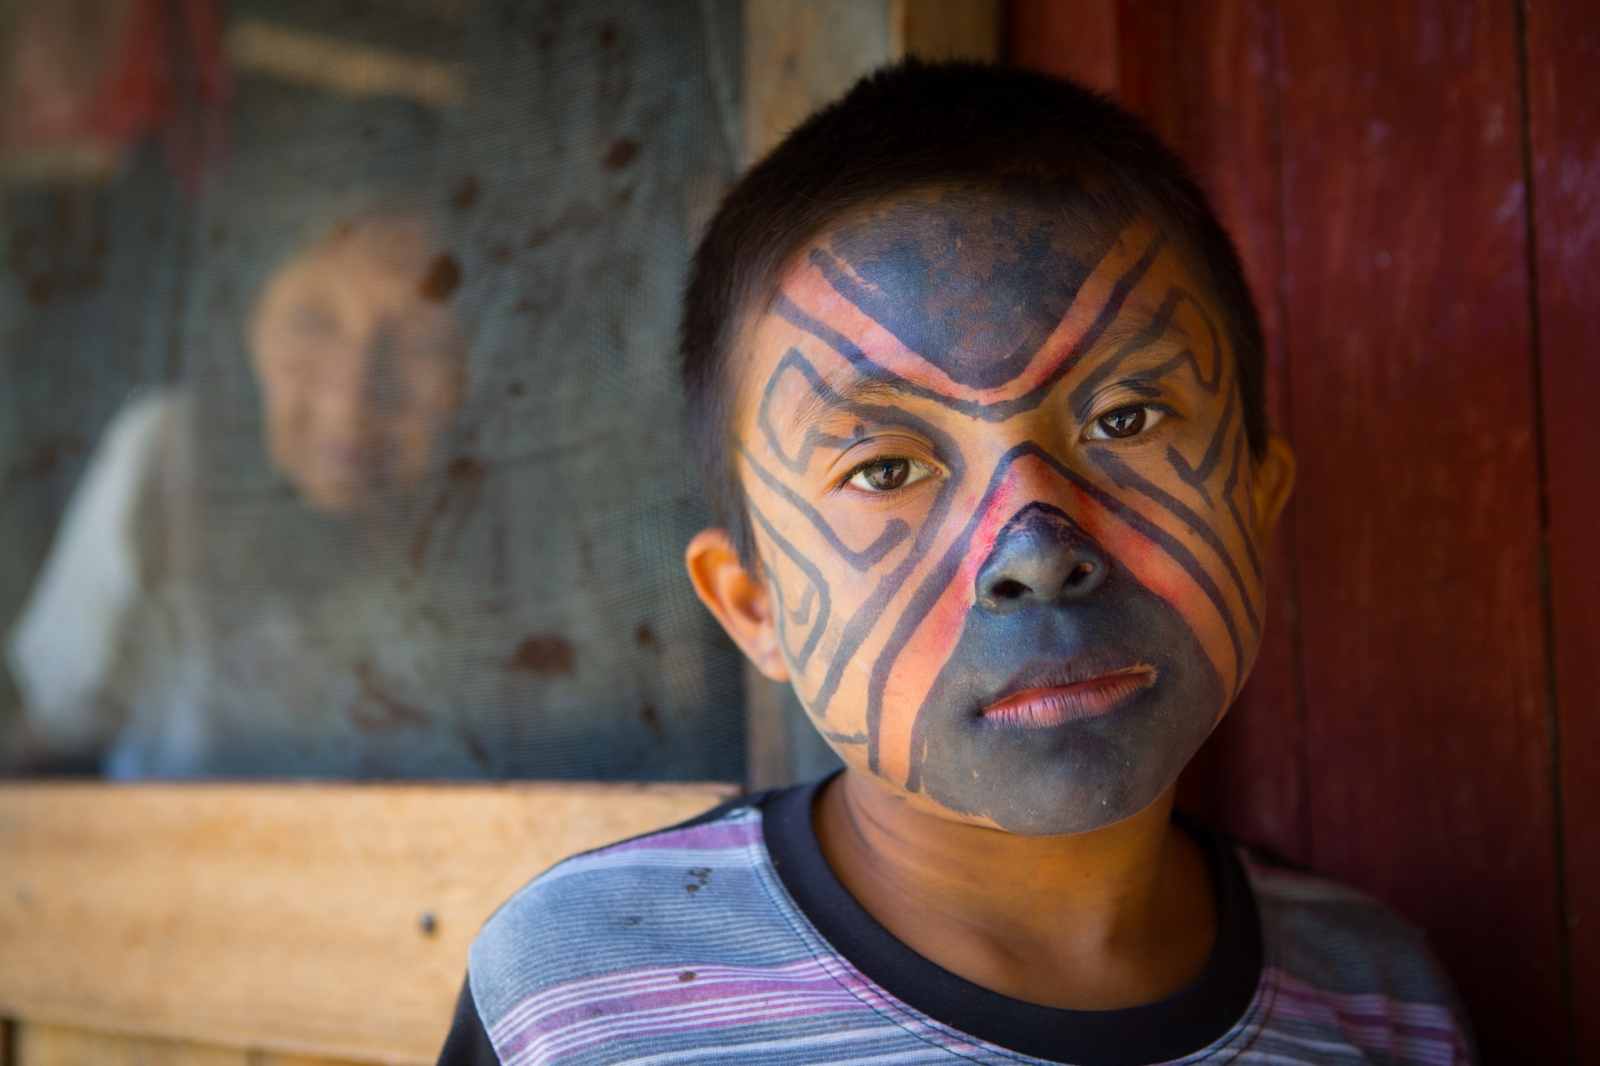 Indigenousboy inSanta Rey, Peru. From an assignment with Science Magazine looking at the social and environmental issues affecting isolated tribes in and around the Alto Purús National Park, Peru.